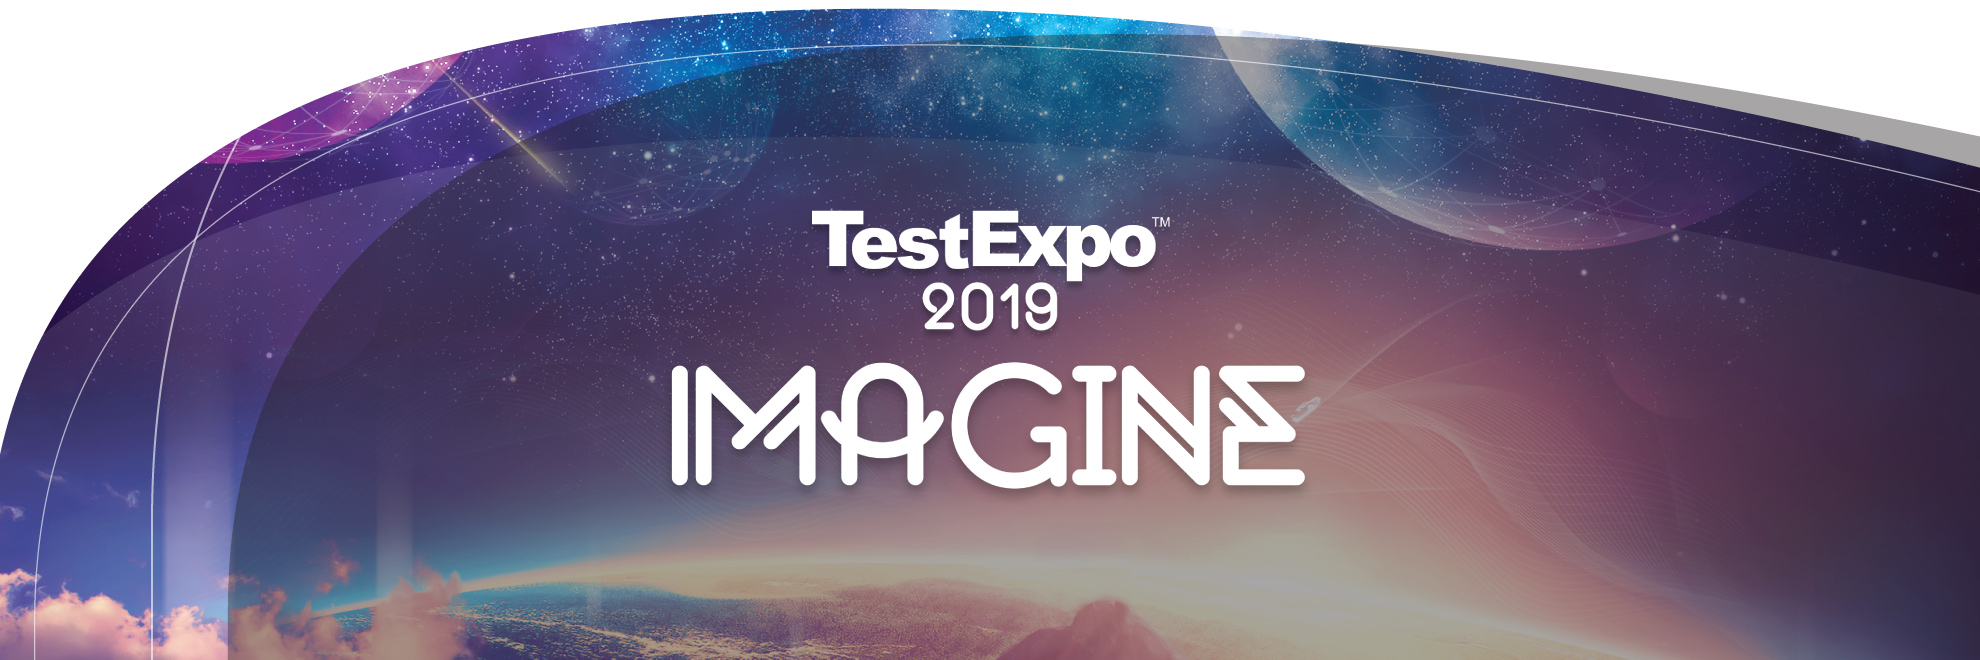 test expo 2019